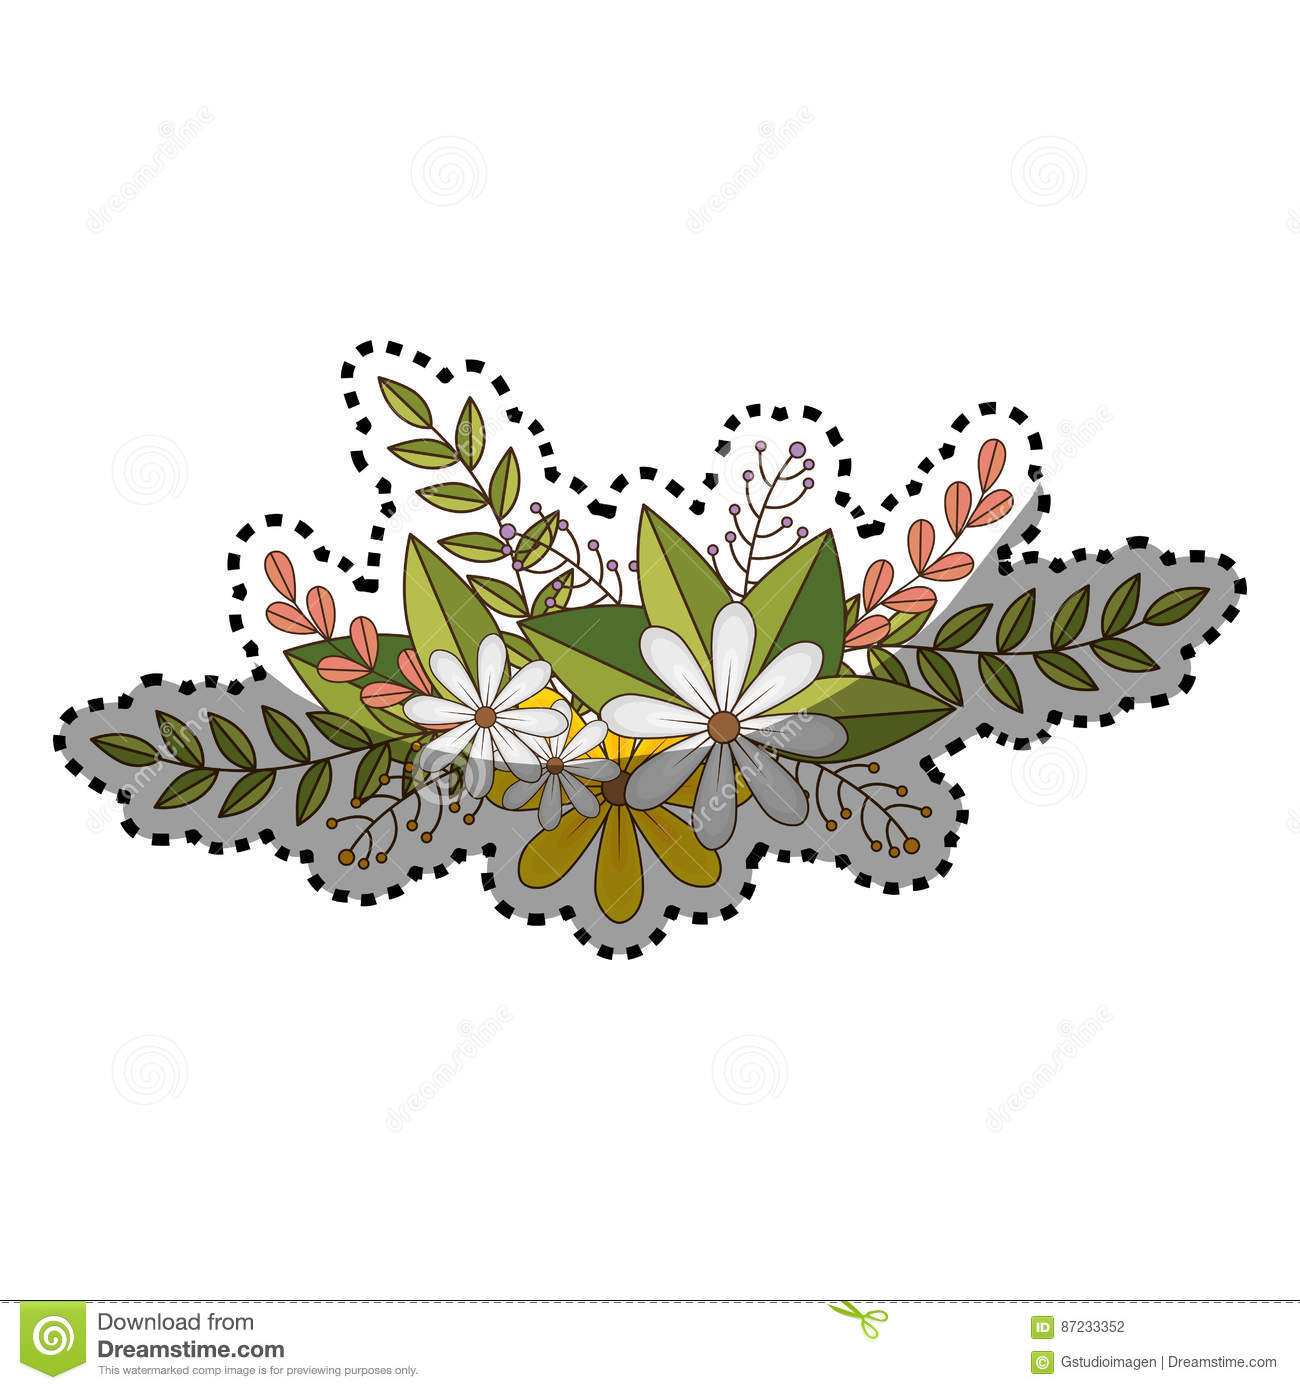 Sticker of flowers crown with floral design and leaves stock vector download sticker of flowers crown with floral design and leaves stock vector illustration of bouquet izmirmasajfo